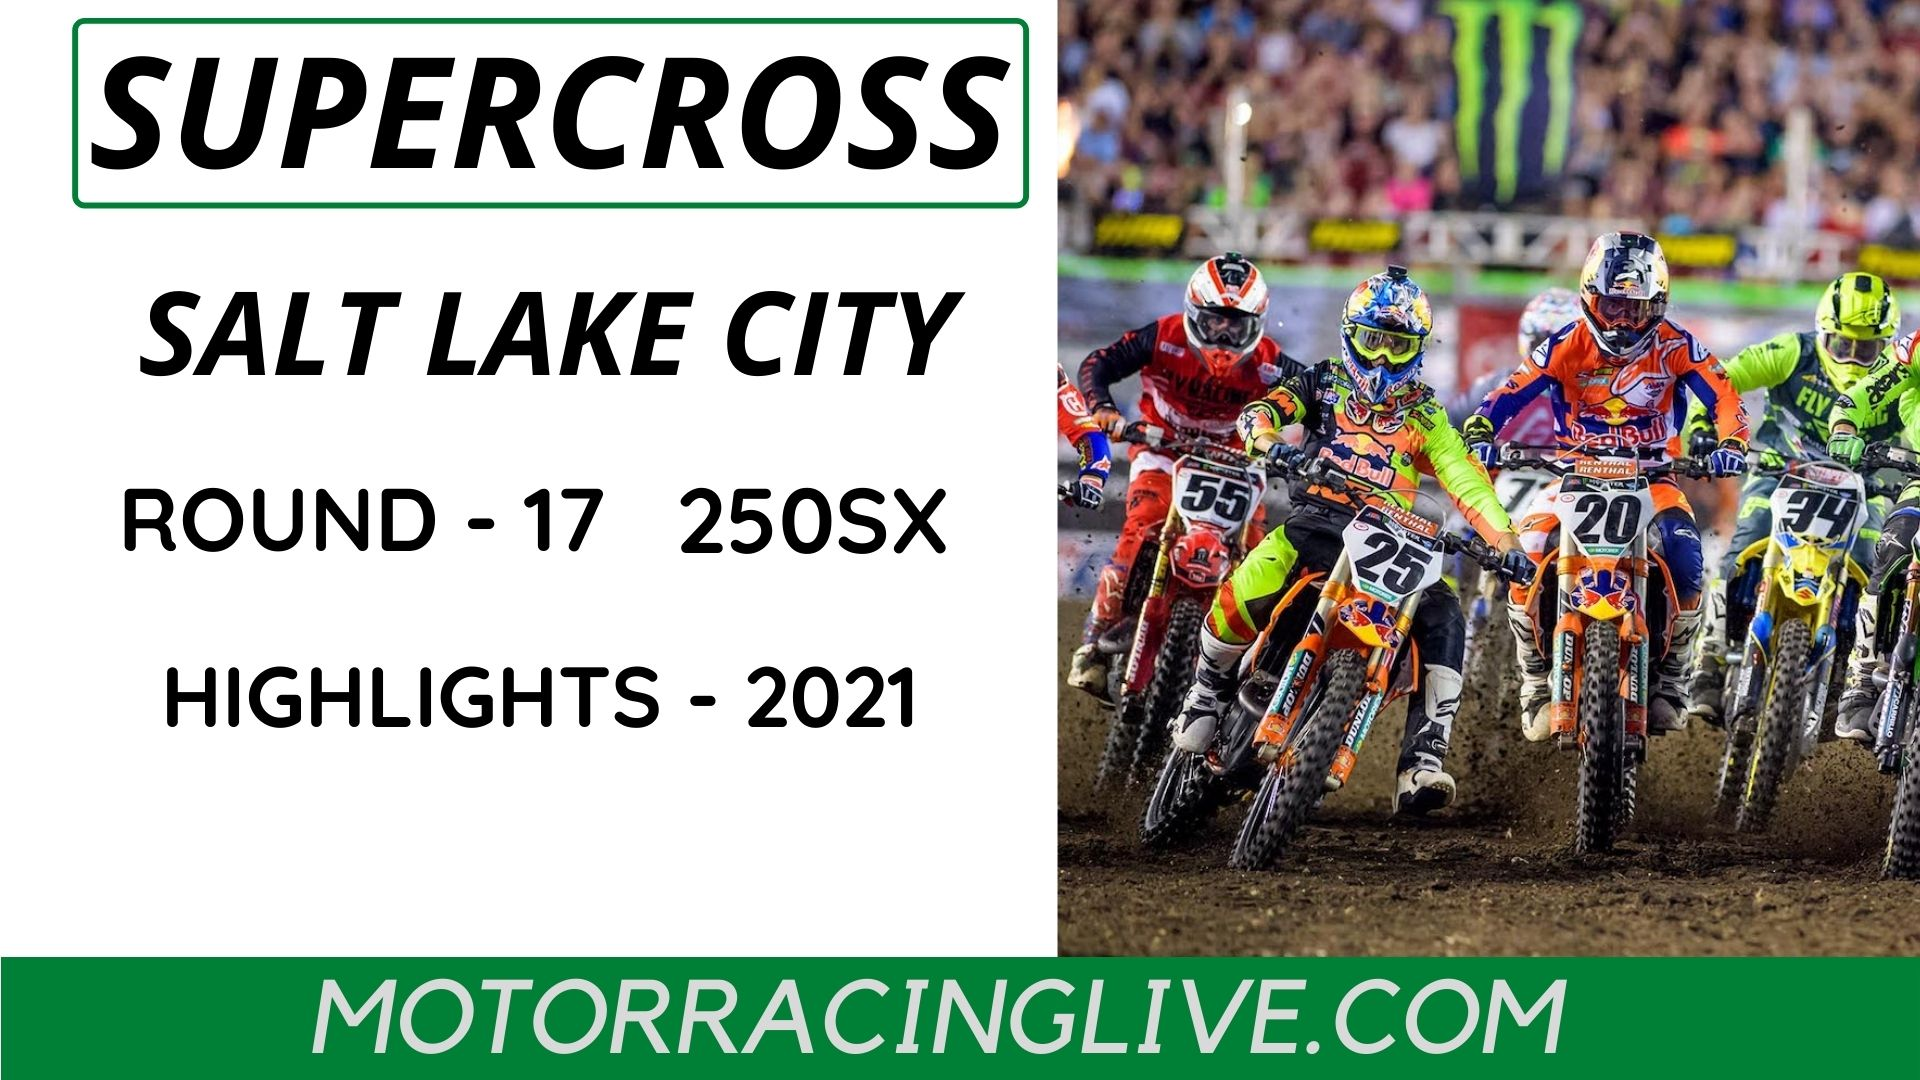 Salt Lake City Round 17 250SX Highlights 2021 Supercross